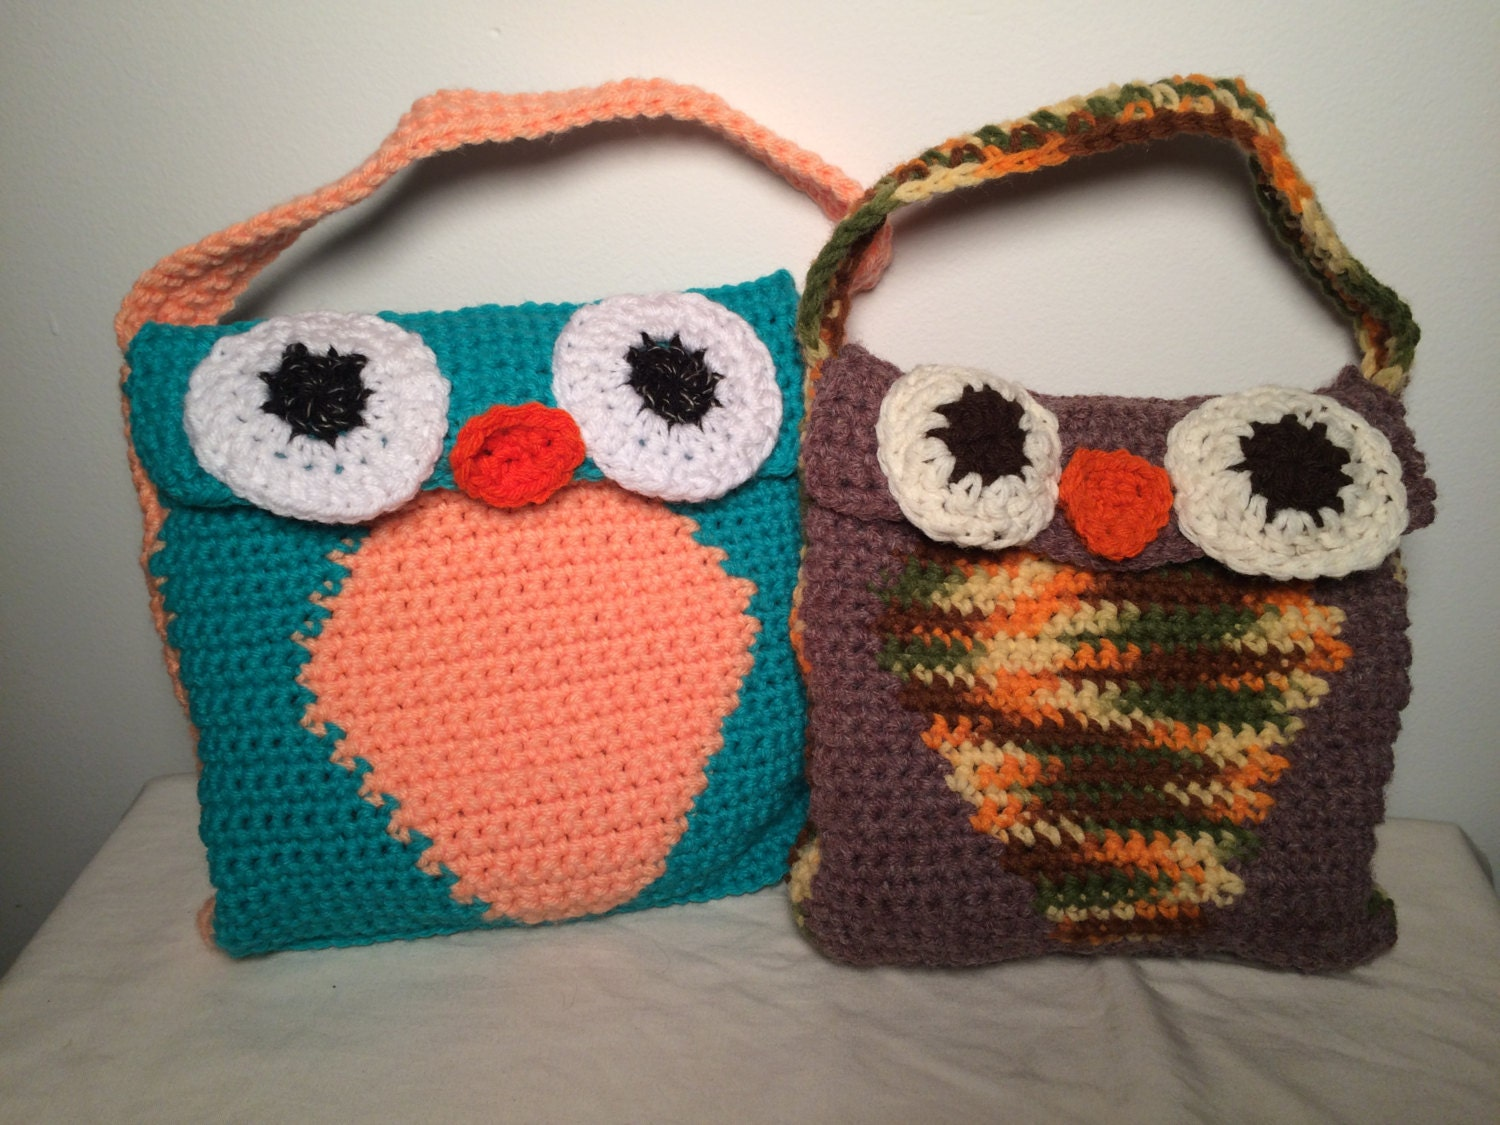 Crochet Lunch Bag Pattern : Crochet Owl Lunch Bag Pattern by hippiescreations on Etsy